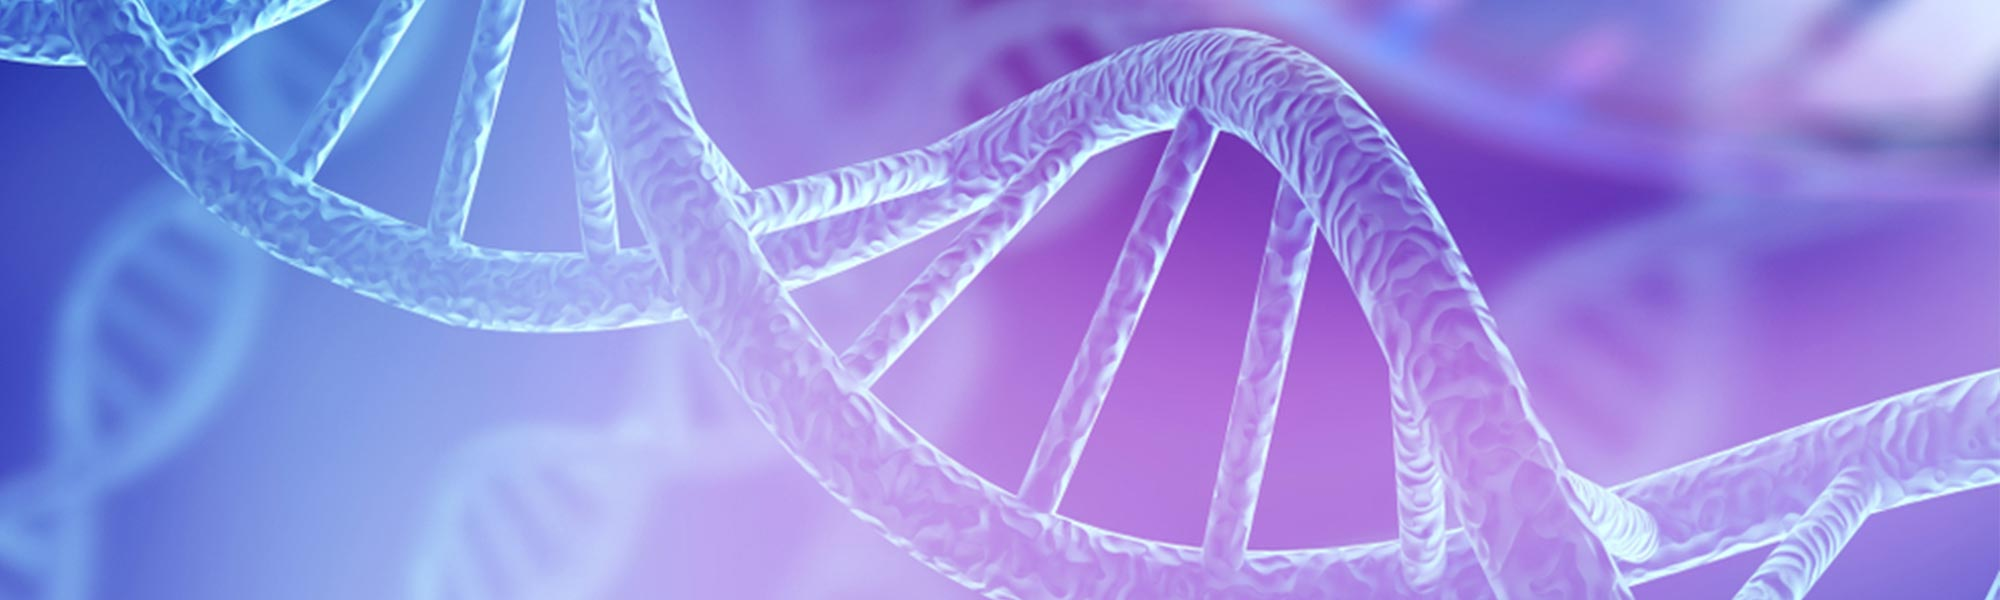 Blue DNA structure isolated background